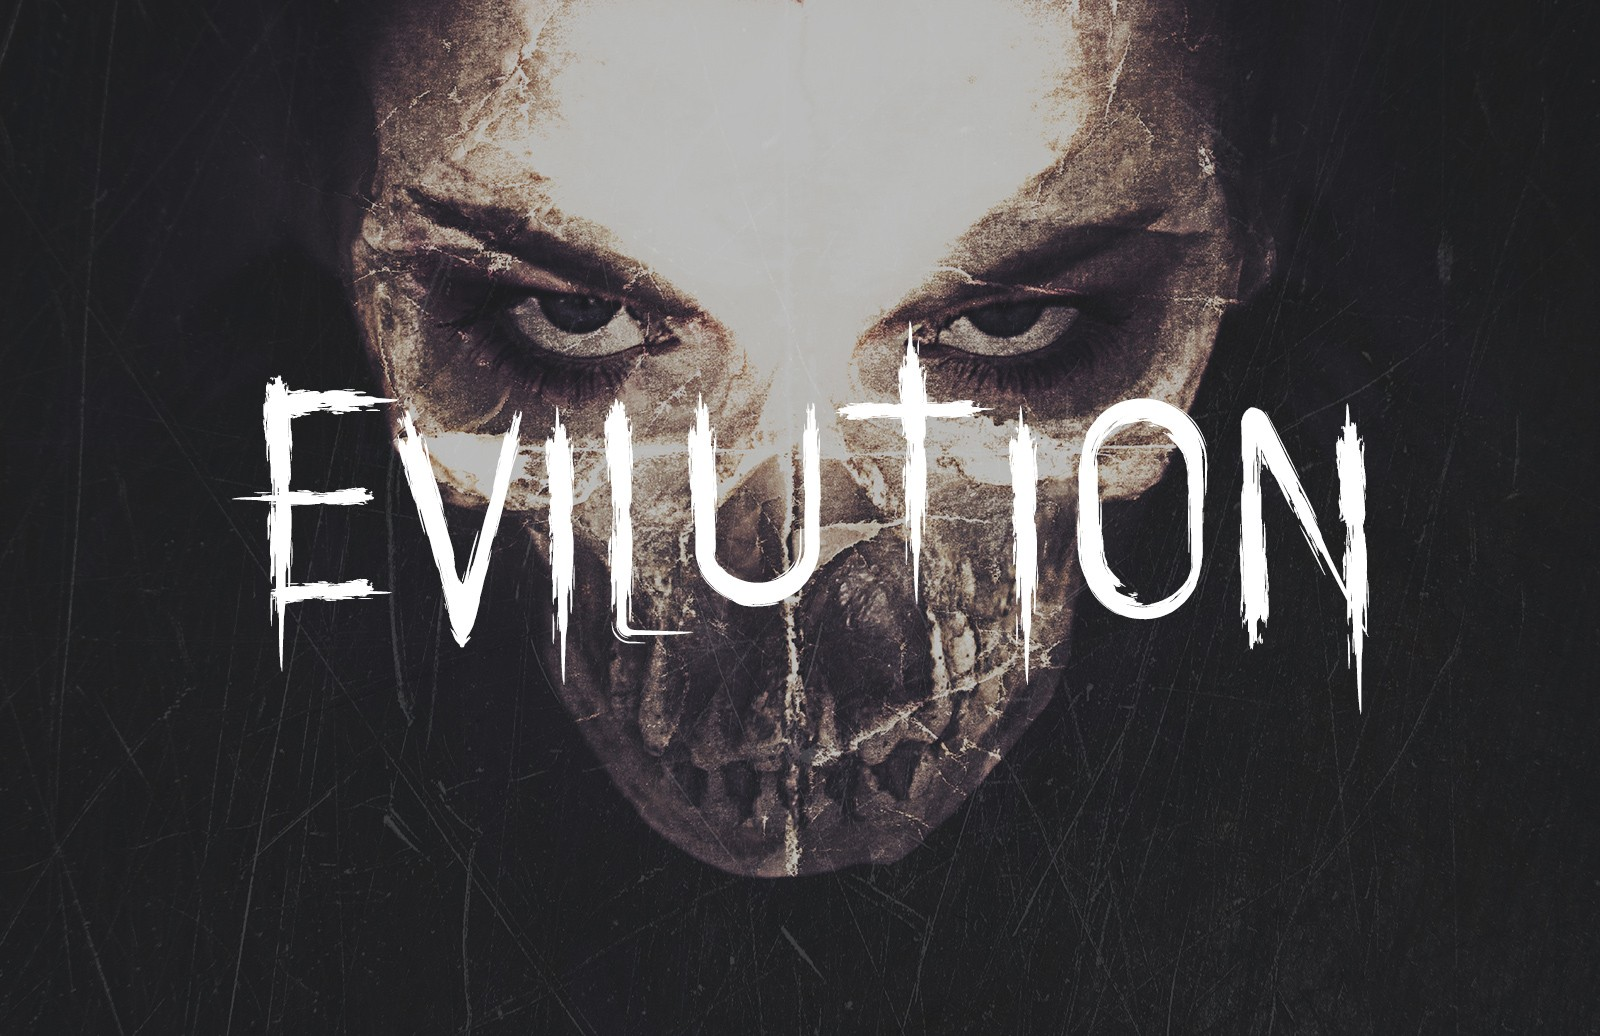 Evilution - Horror Typeface 1